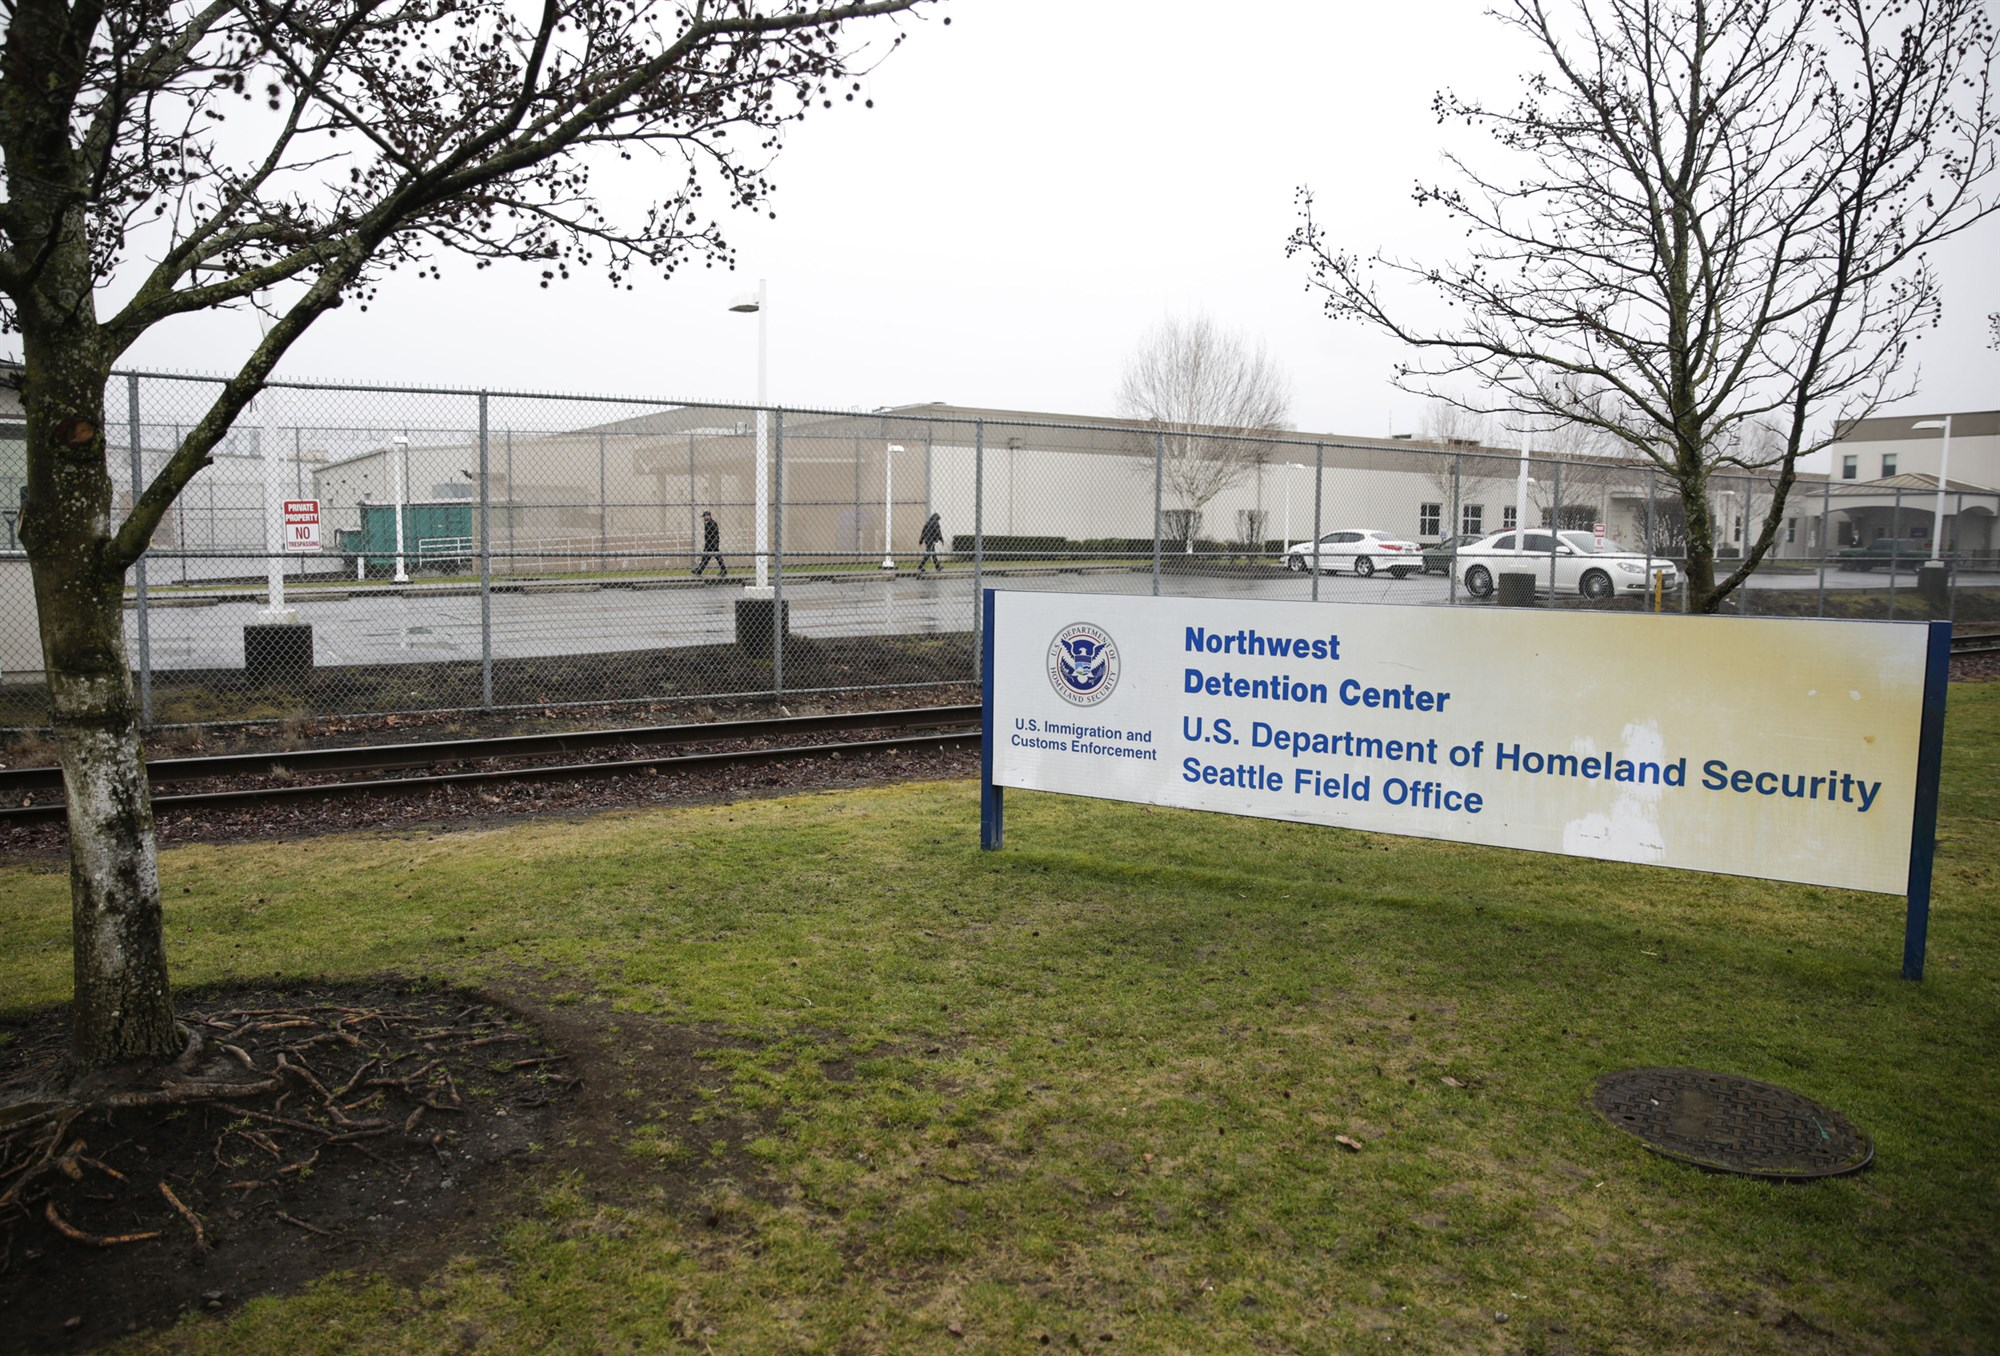 Man attacks immigrant detention center in Washington state, found dead after police shooting The man threw incendiary devices and tried to ignite a large propane tank next to a Tacoma detention center that holds up to about 1,500 migrants.